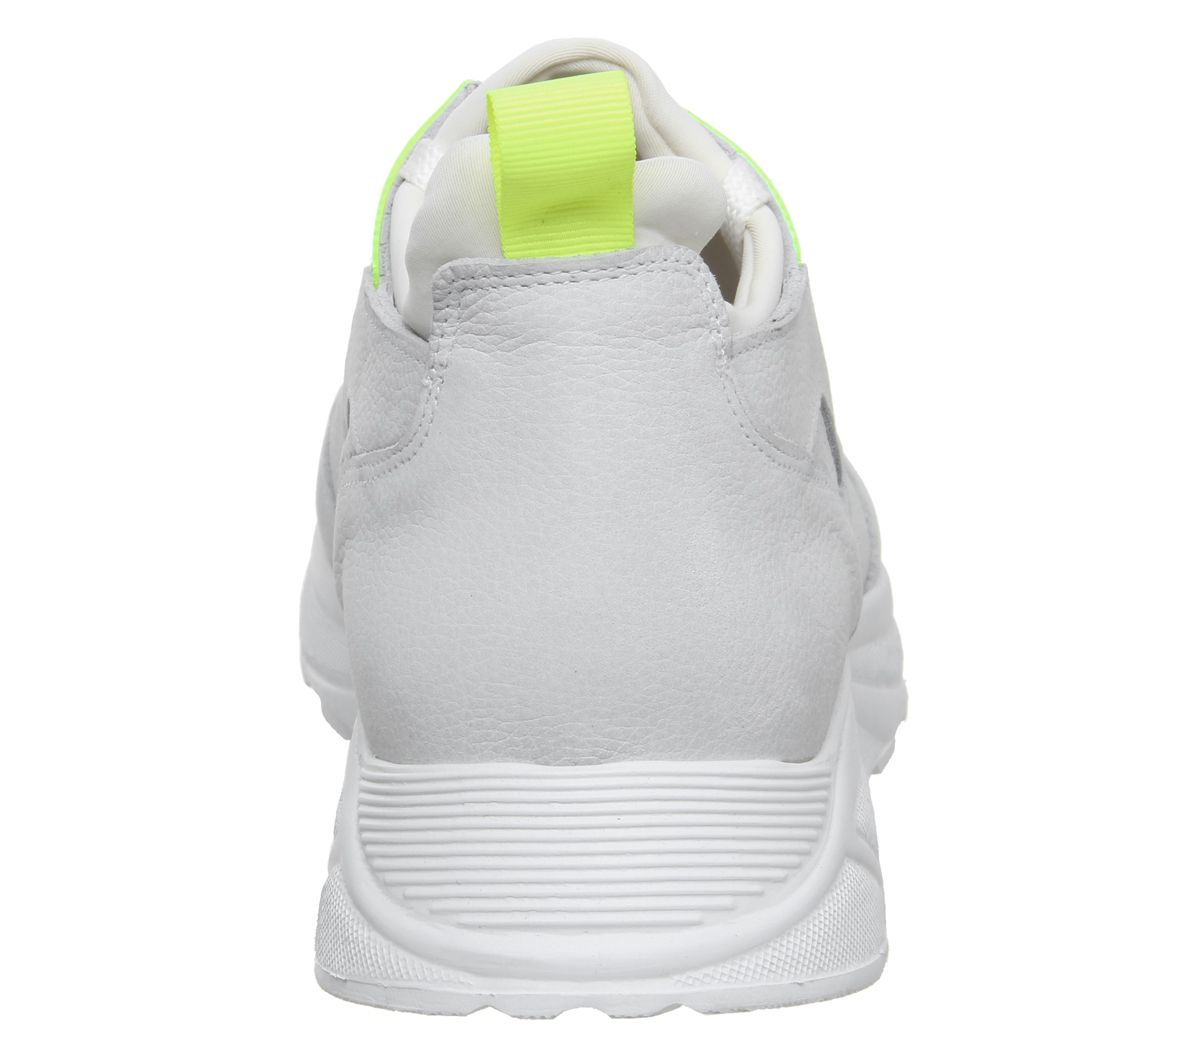 Mens-Office-Lacrosse-Trainers-White-Yellow-Nubuck-Casual-Shoes thumbnail 4